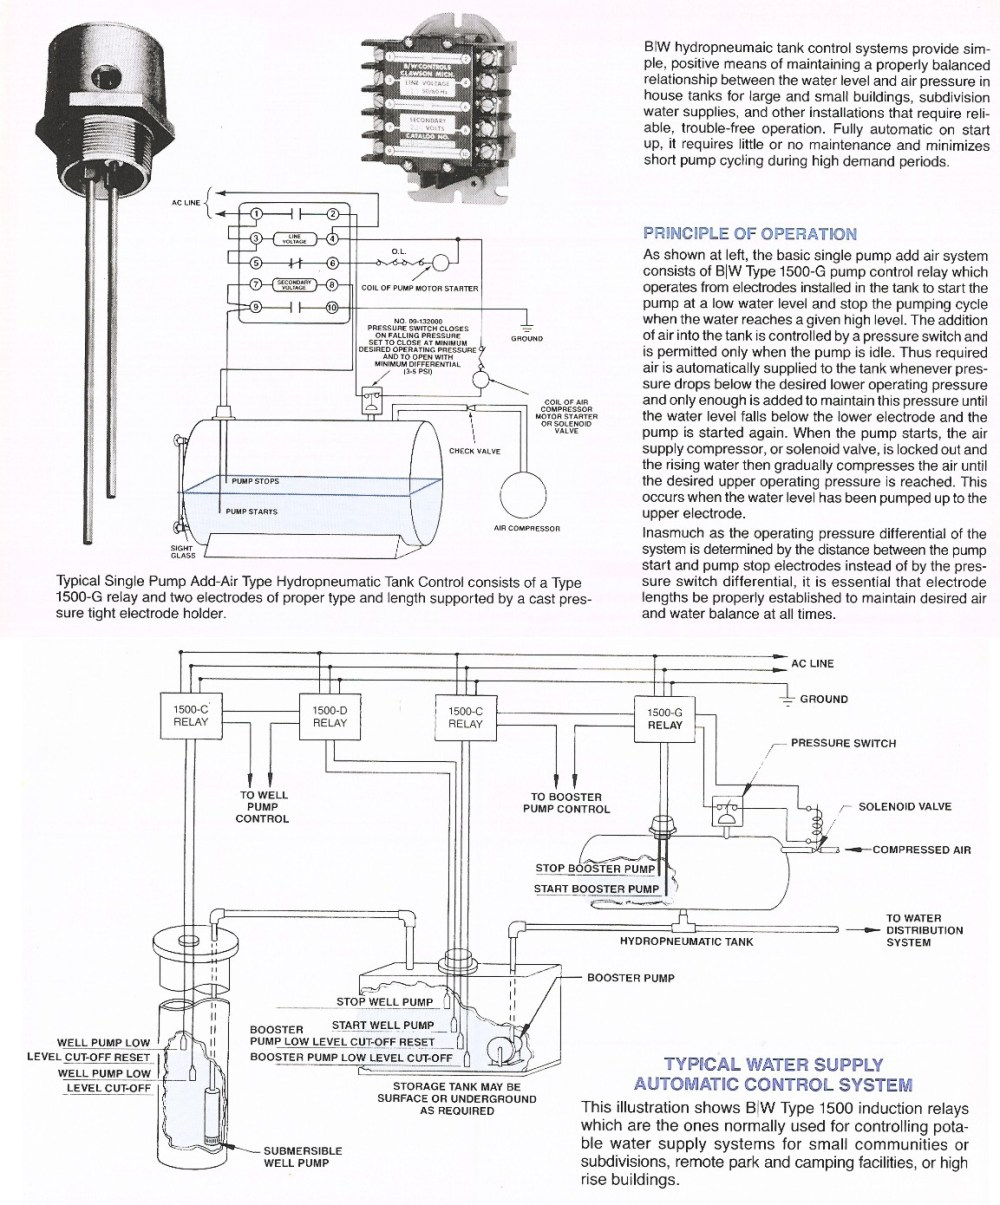 medium resolution of typical water supply automatic control system